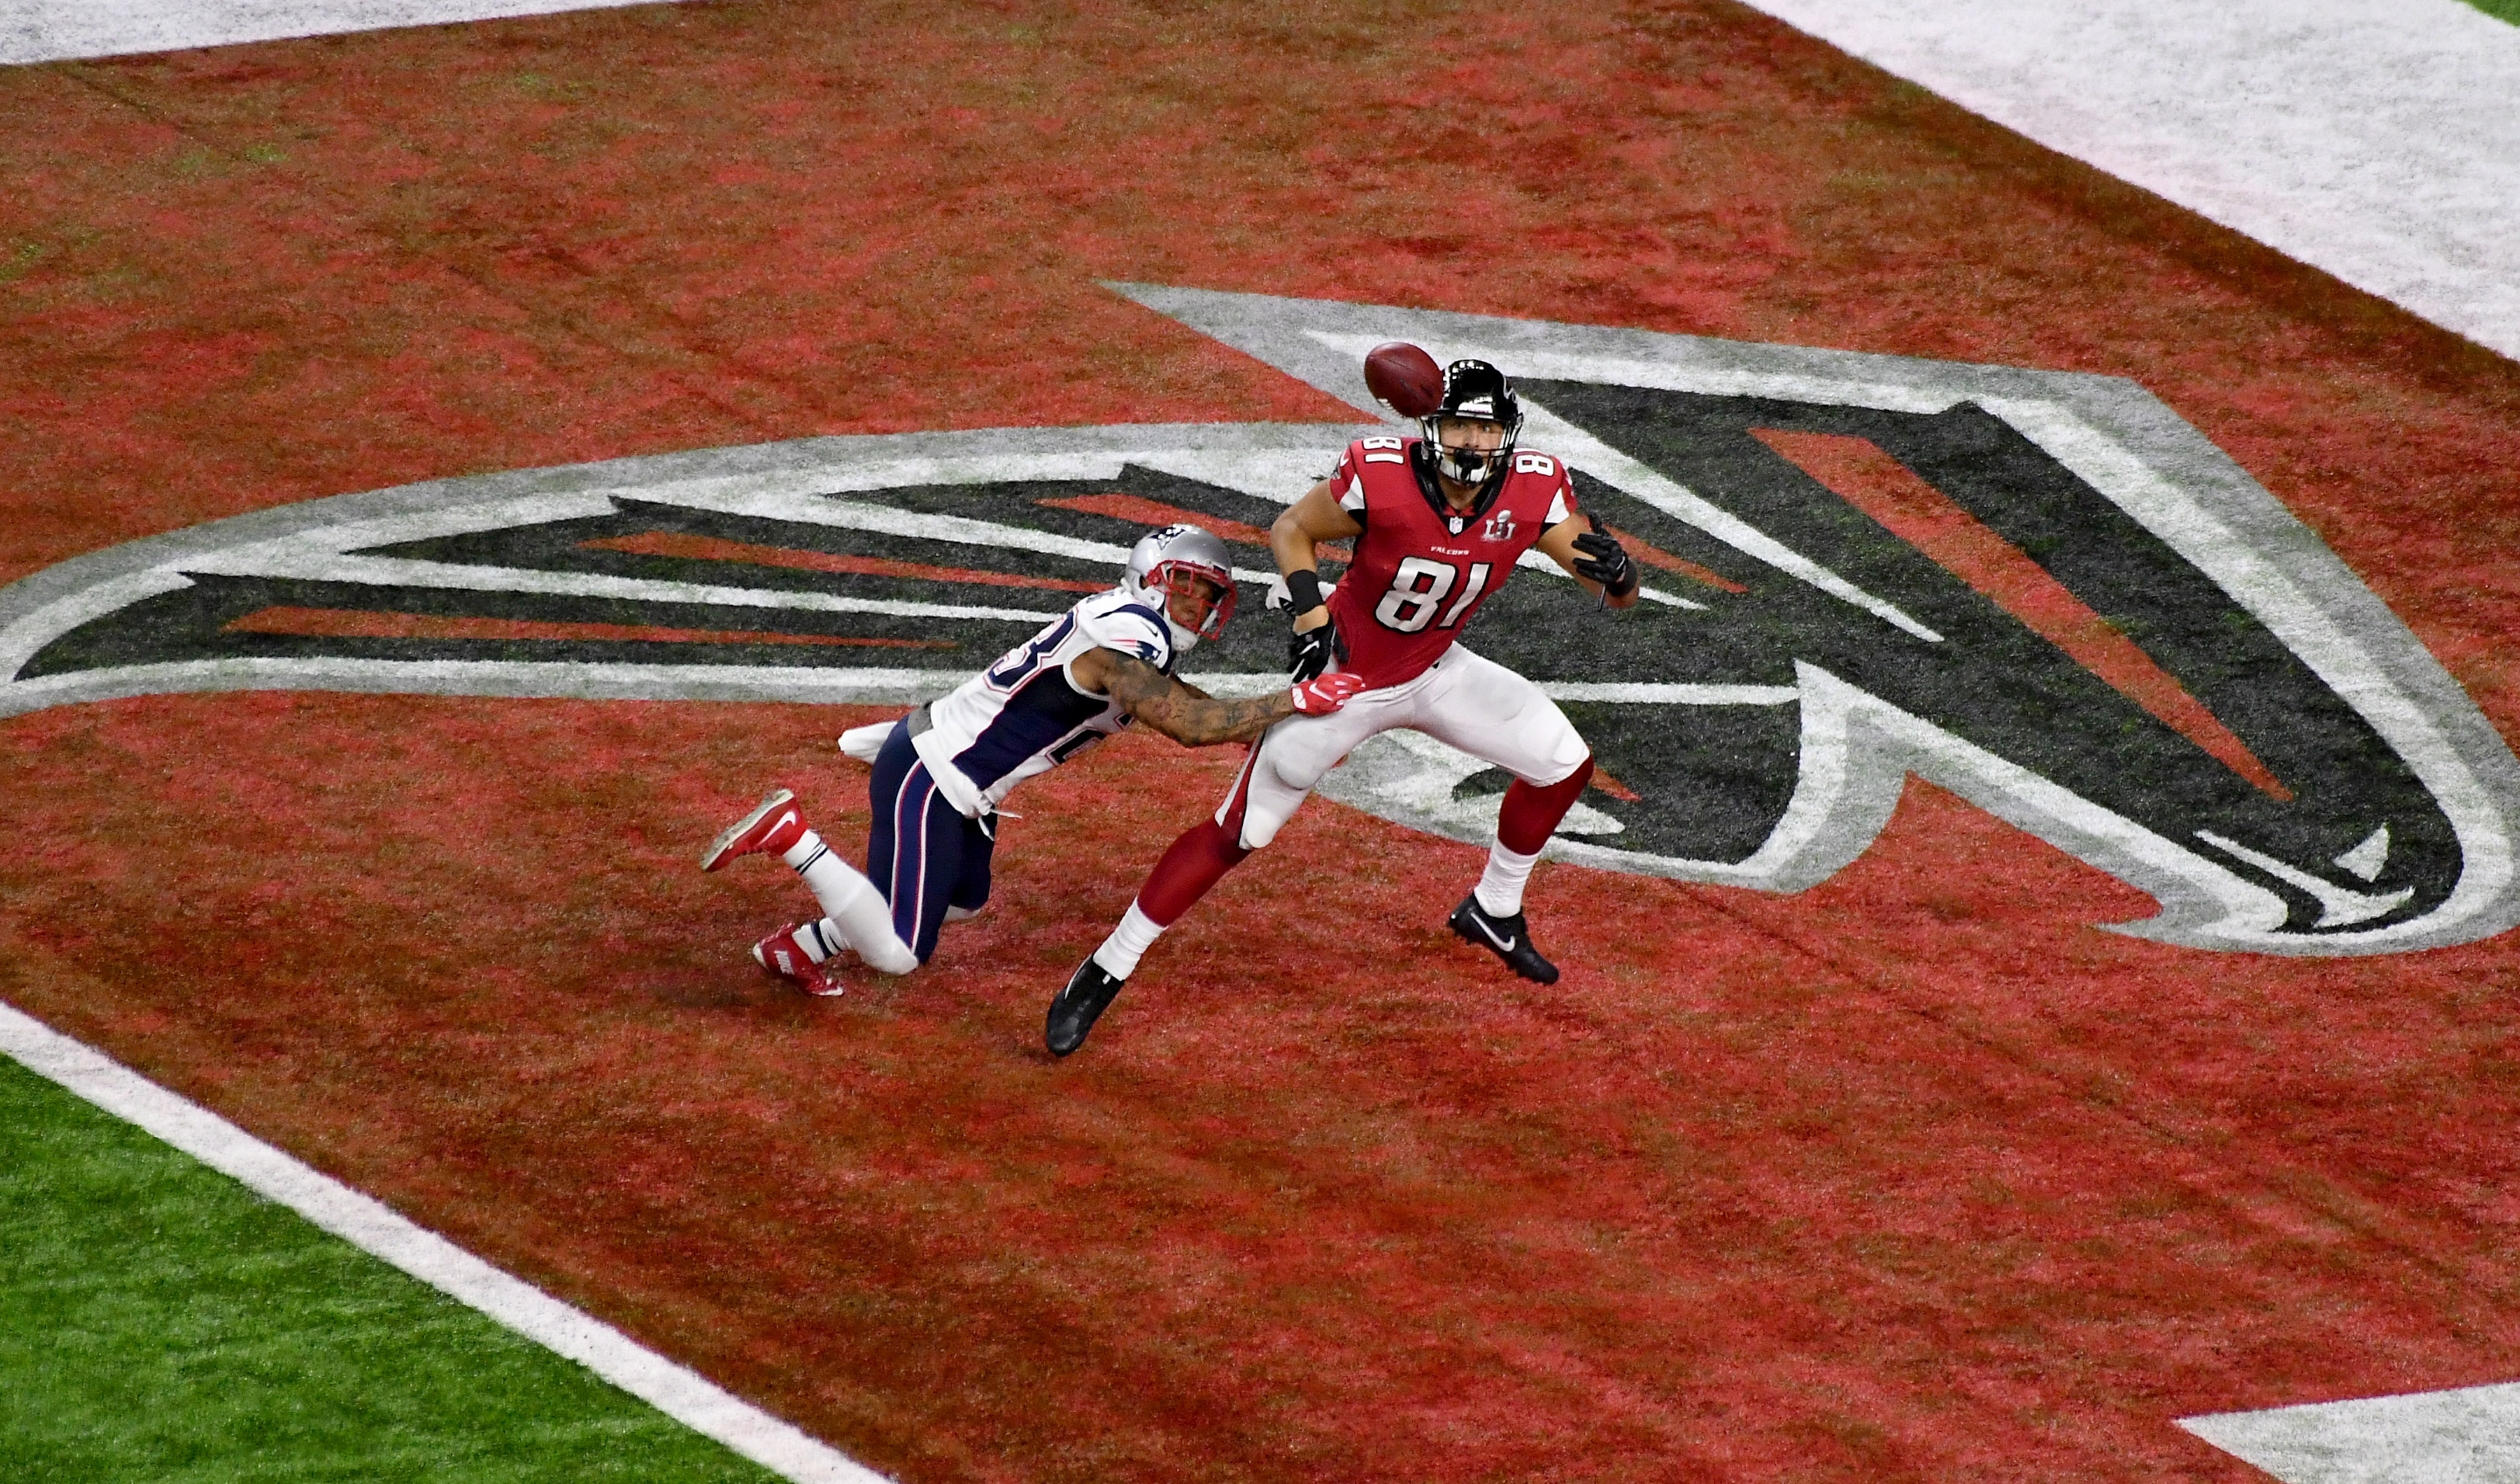 9861533-nfl-super-bowl-li-new-england-patriots-vs-atlanta-falcons